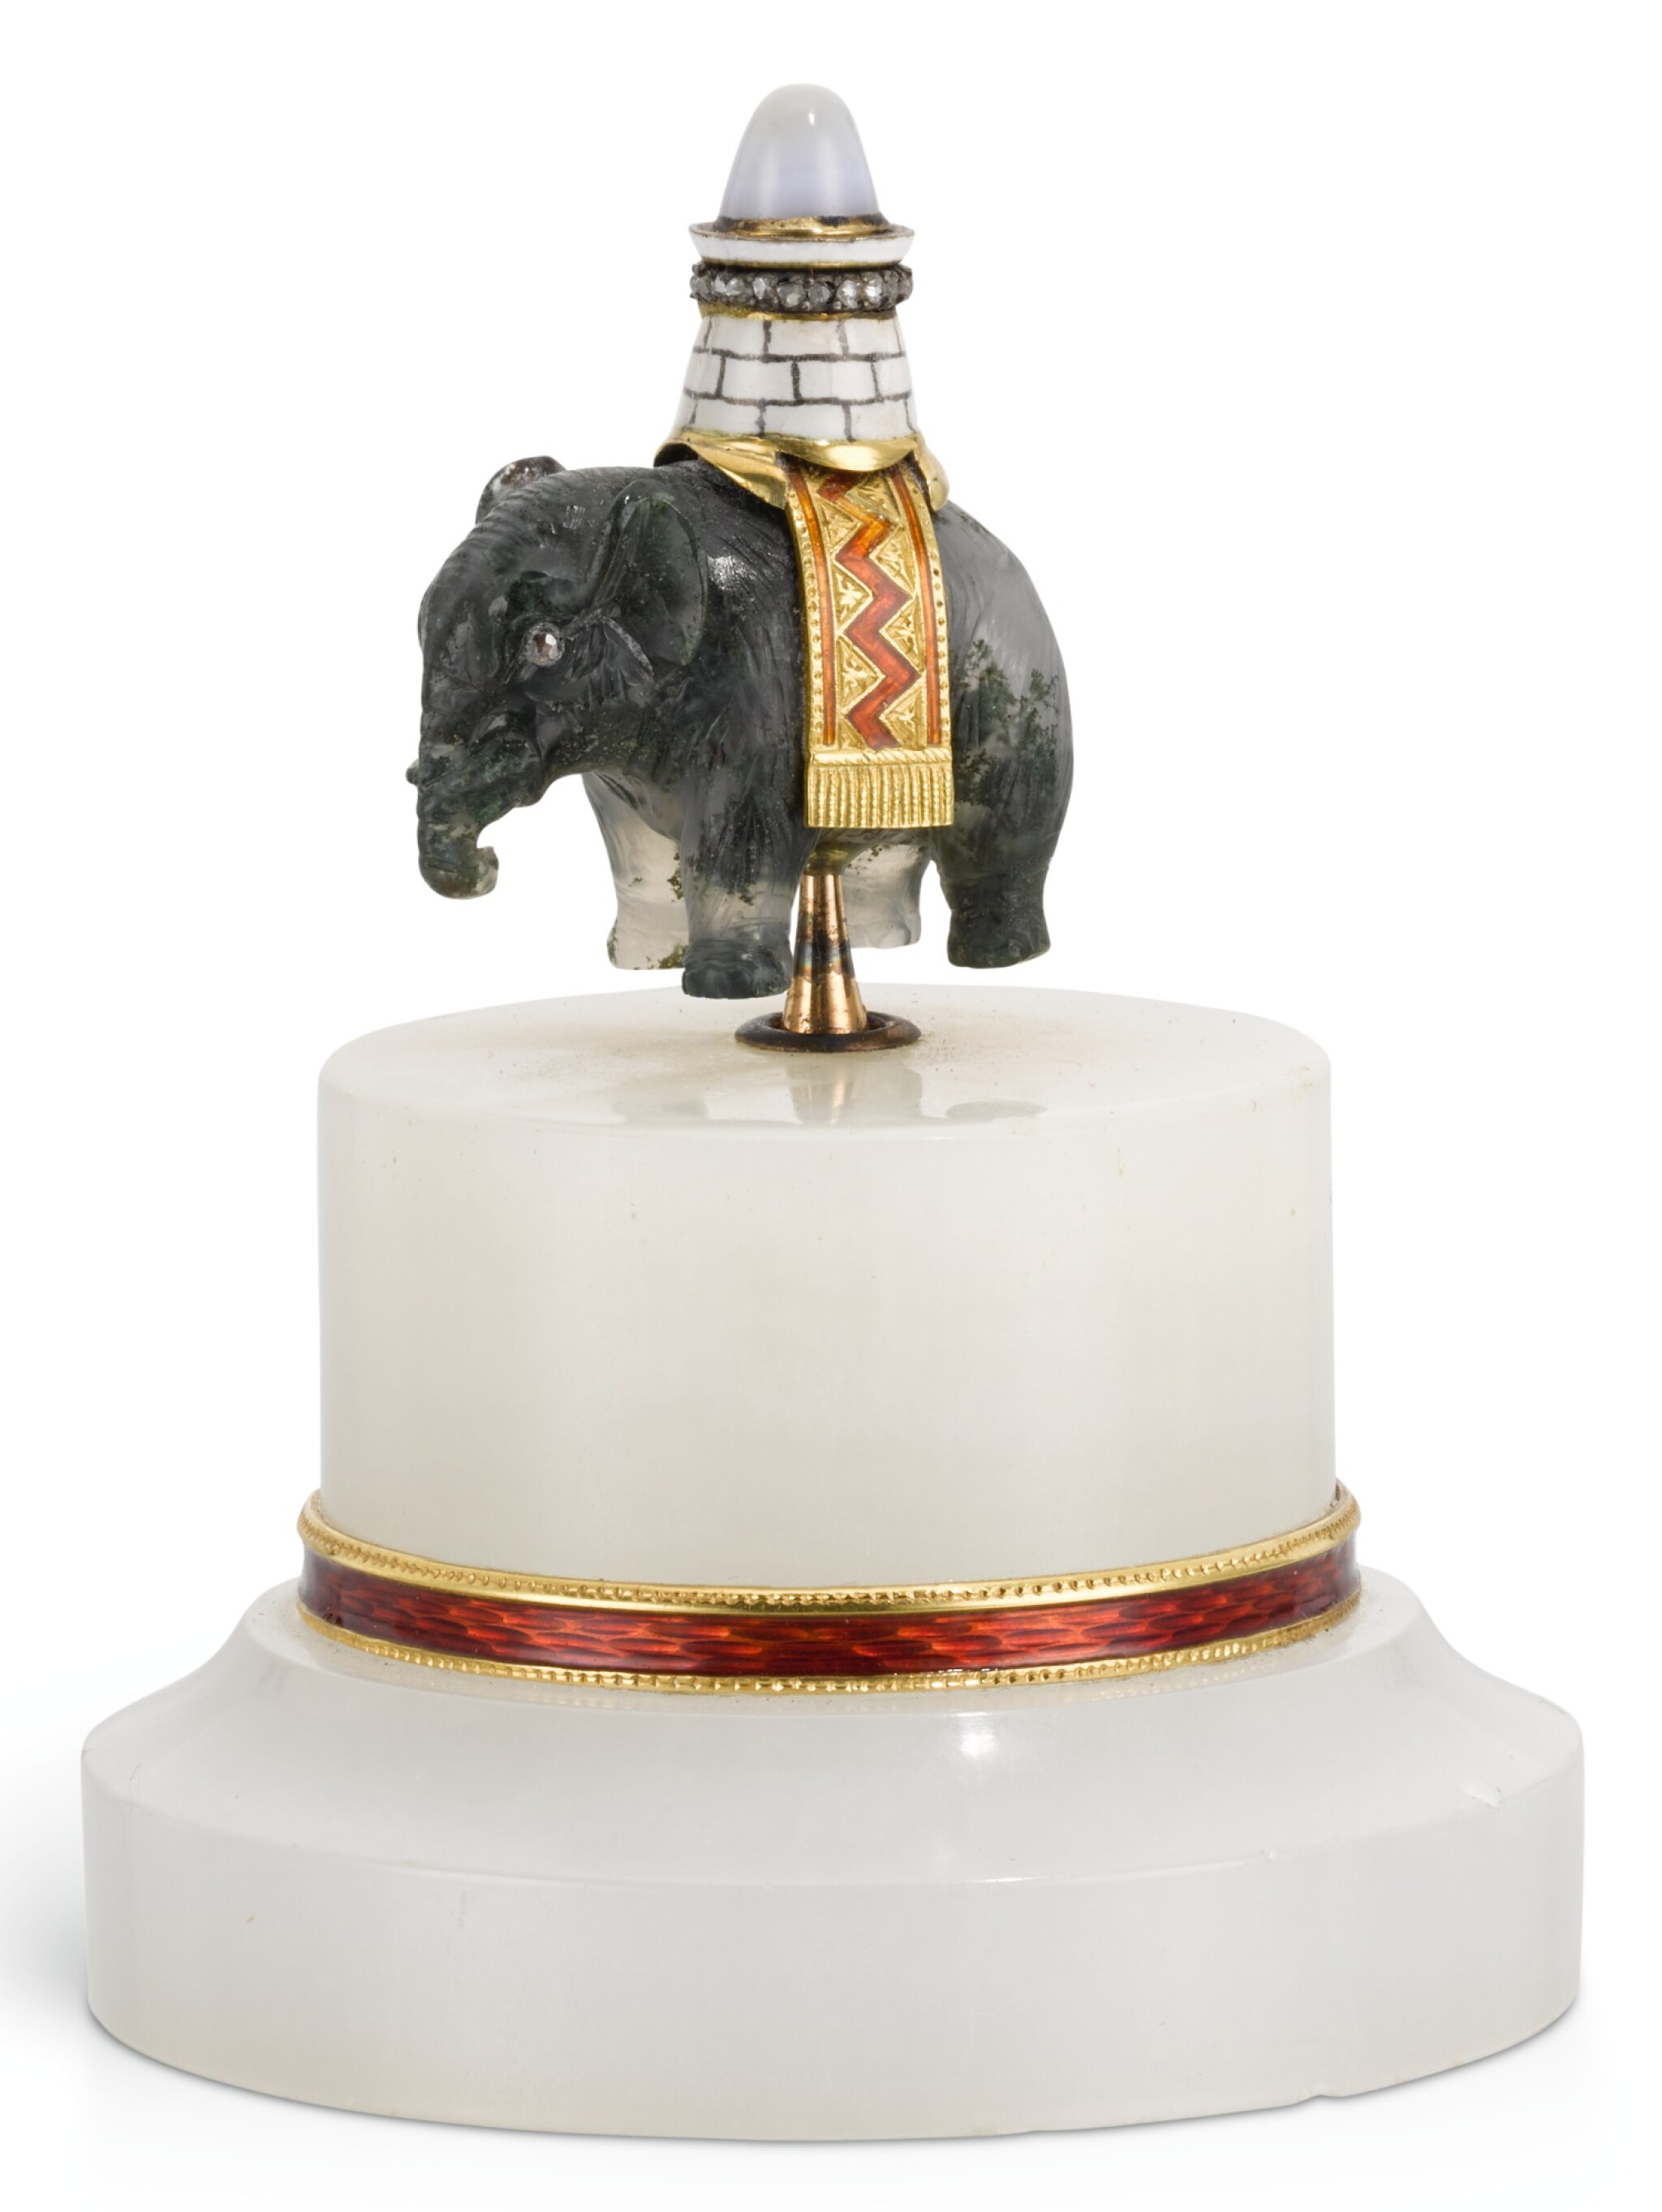 A RARE FABERGÉ JEWELLED GOLD-MOUNTED AND GUILLOCHÉ ENAMEL HARDSTONE BELLPUSH, WORKMASTER MICHAEL PERCHIN, ST PETERSBURG, 1899-1903